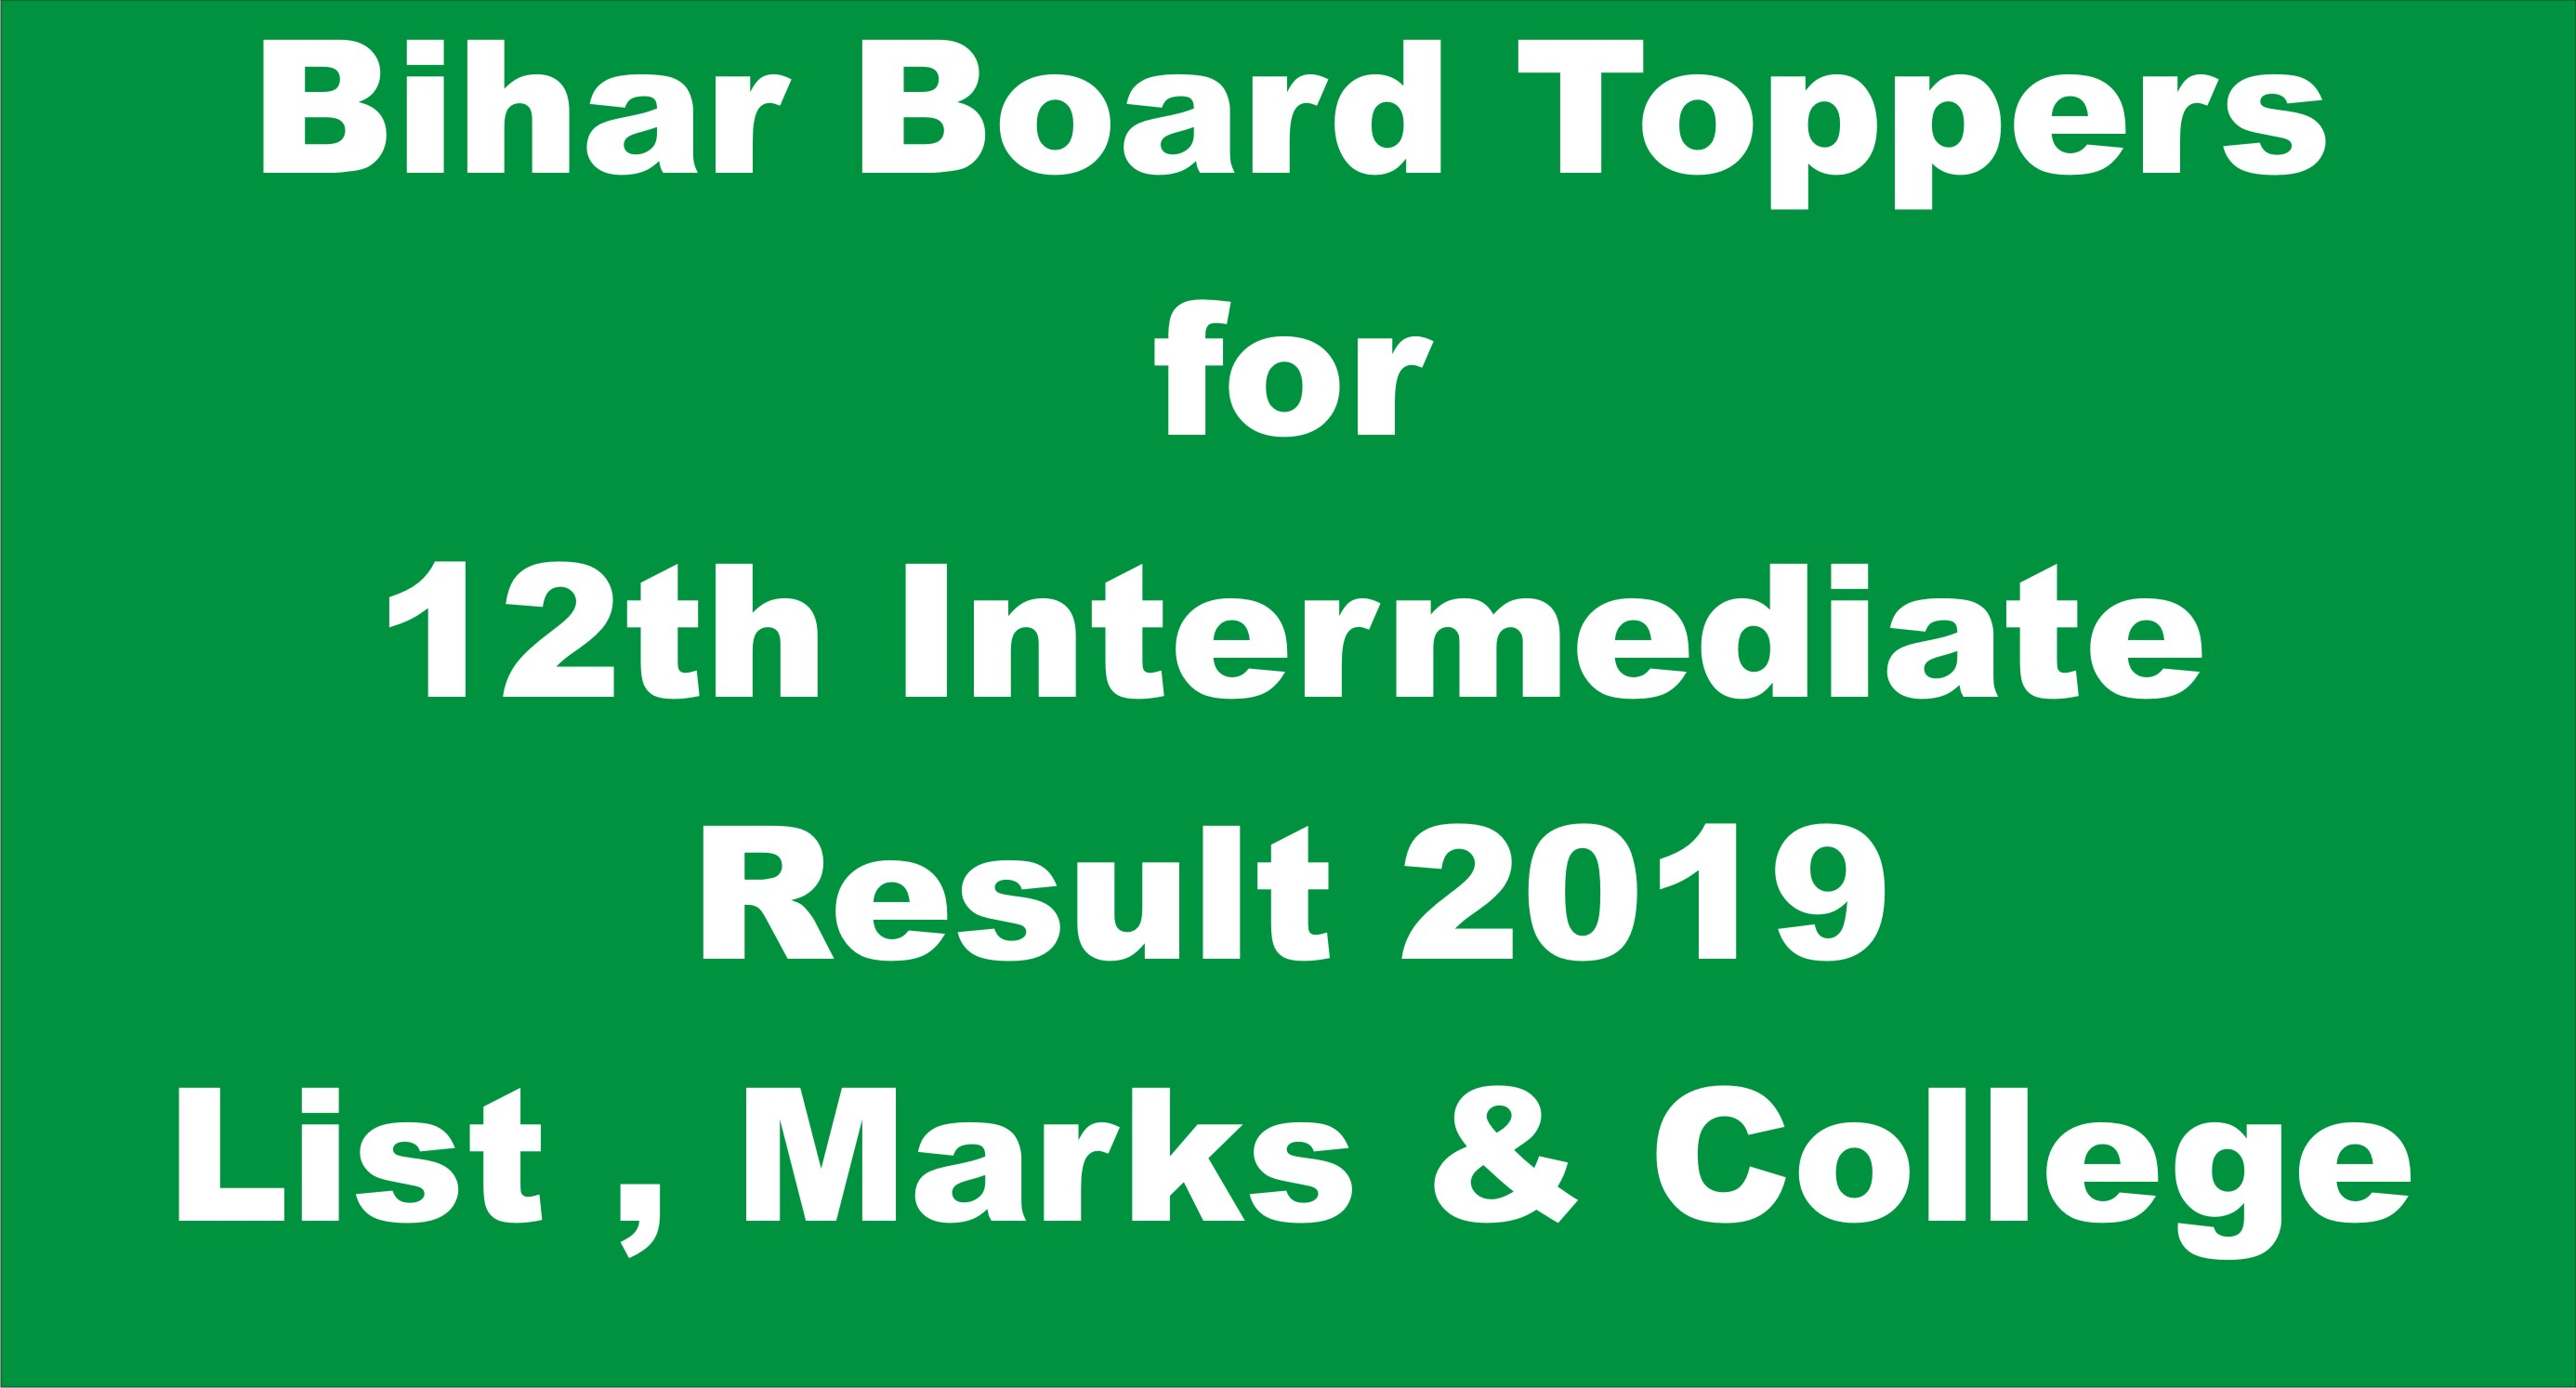 Bihar Board Toppers for 12th Intermediate Result 2019 List , Marks & College